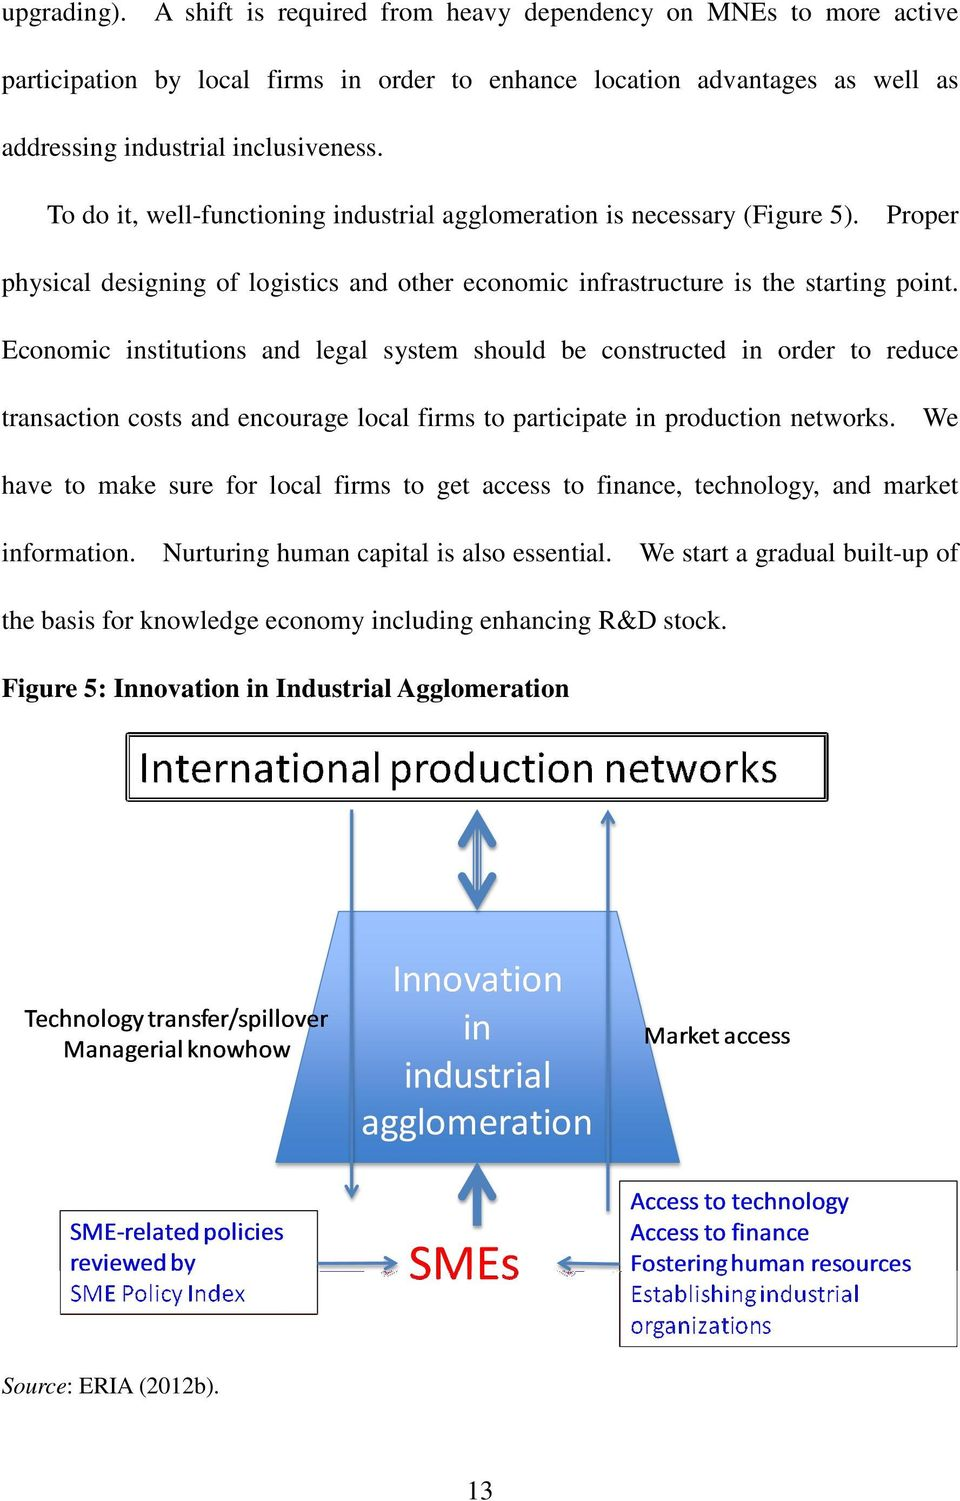 Economic institutions and legal system should be constructed in order to reduce transaction costs and encourage local firms to participate in production networks.